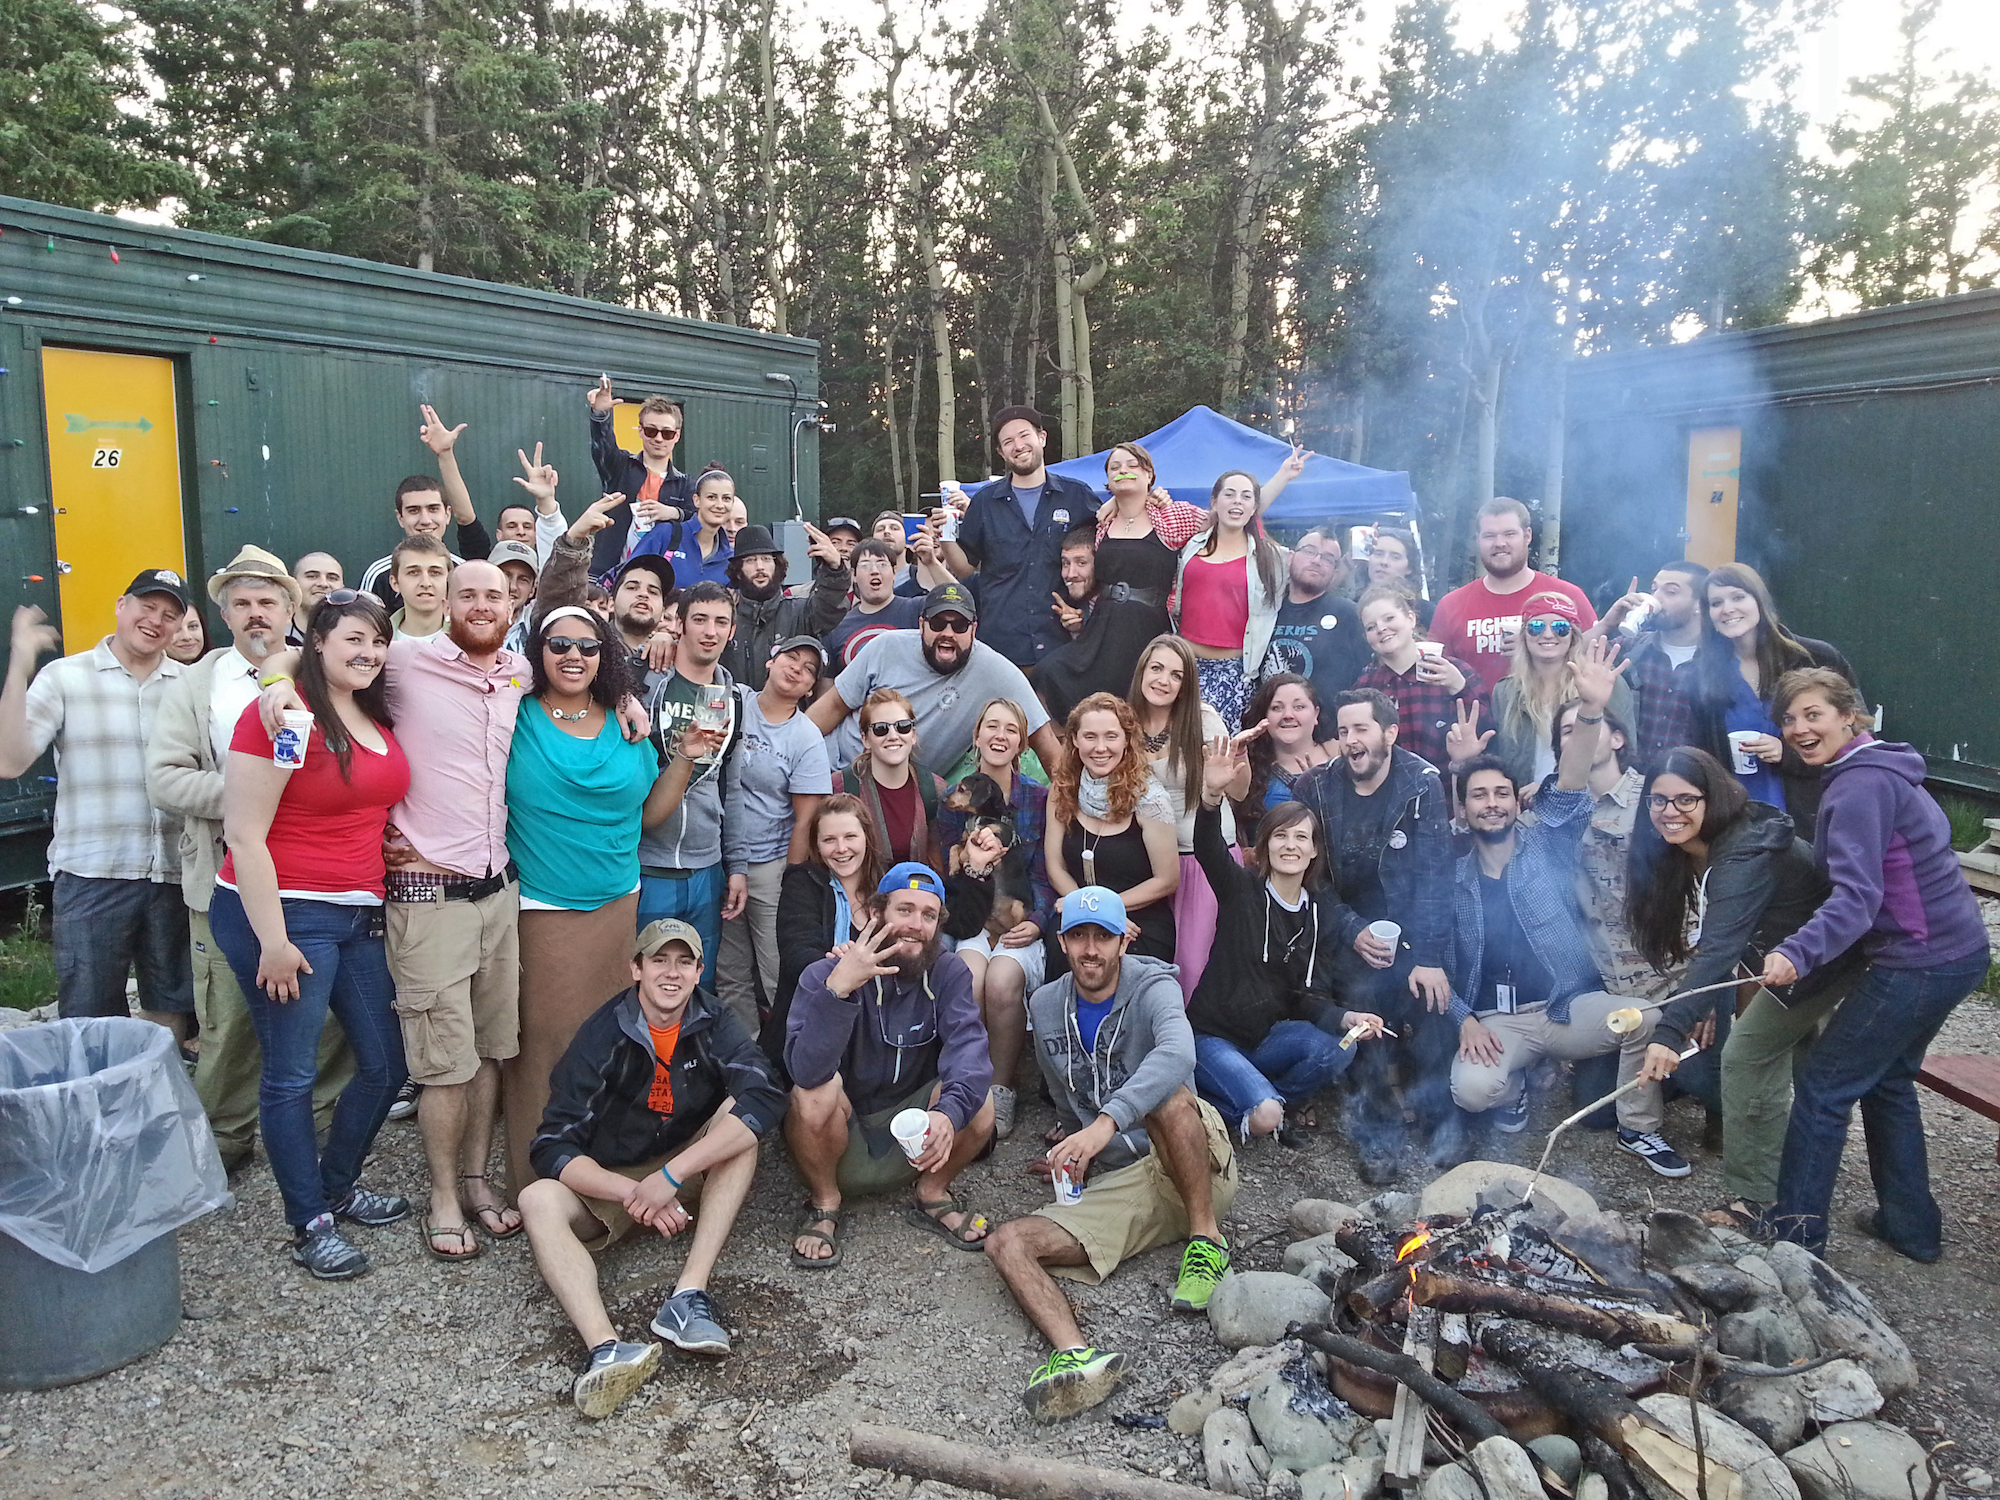 denali lodging northern hospitality group 49th state brewing party friends